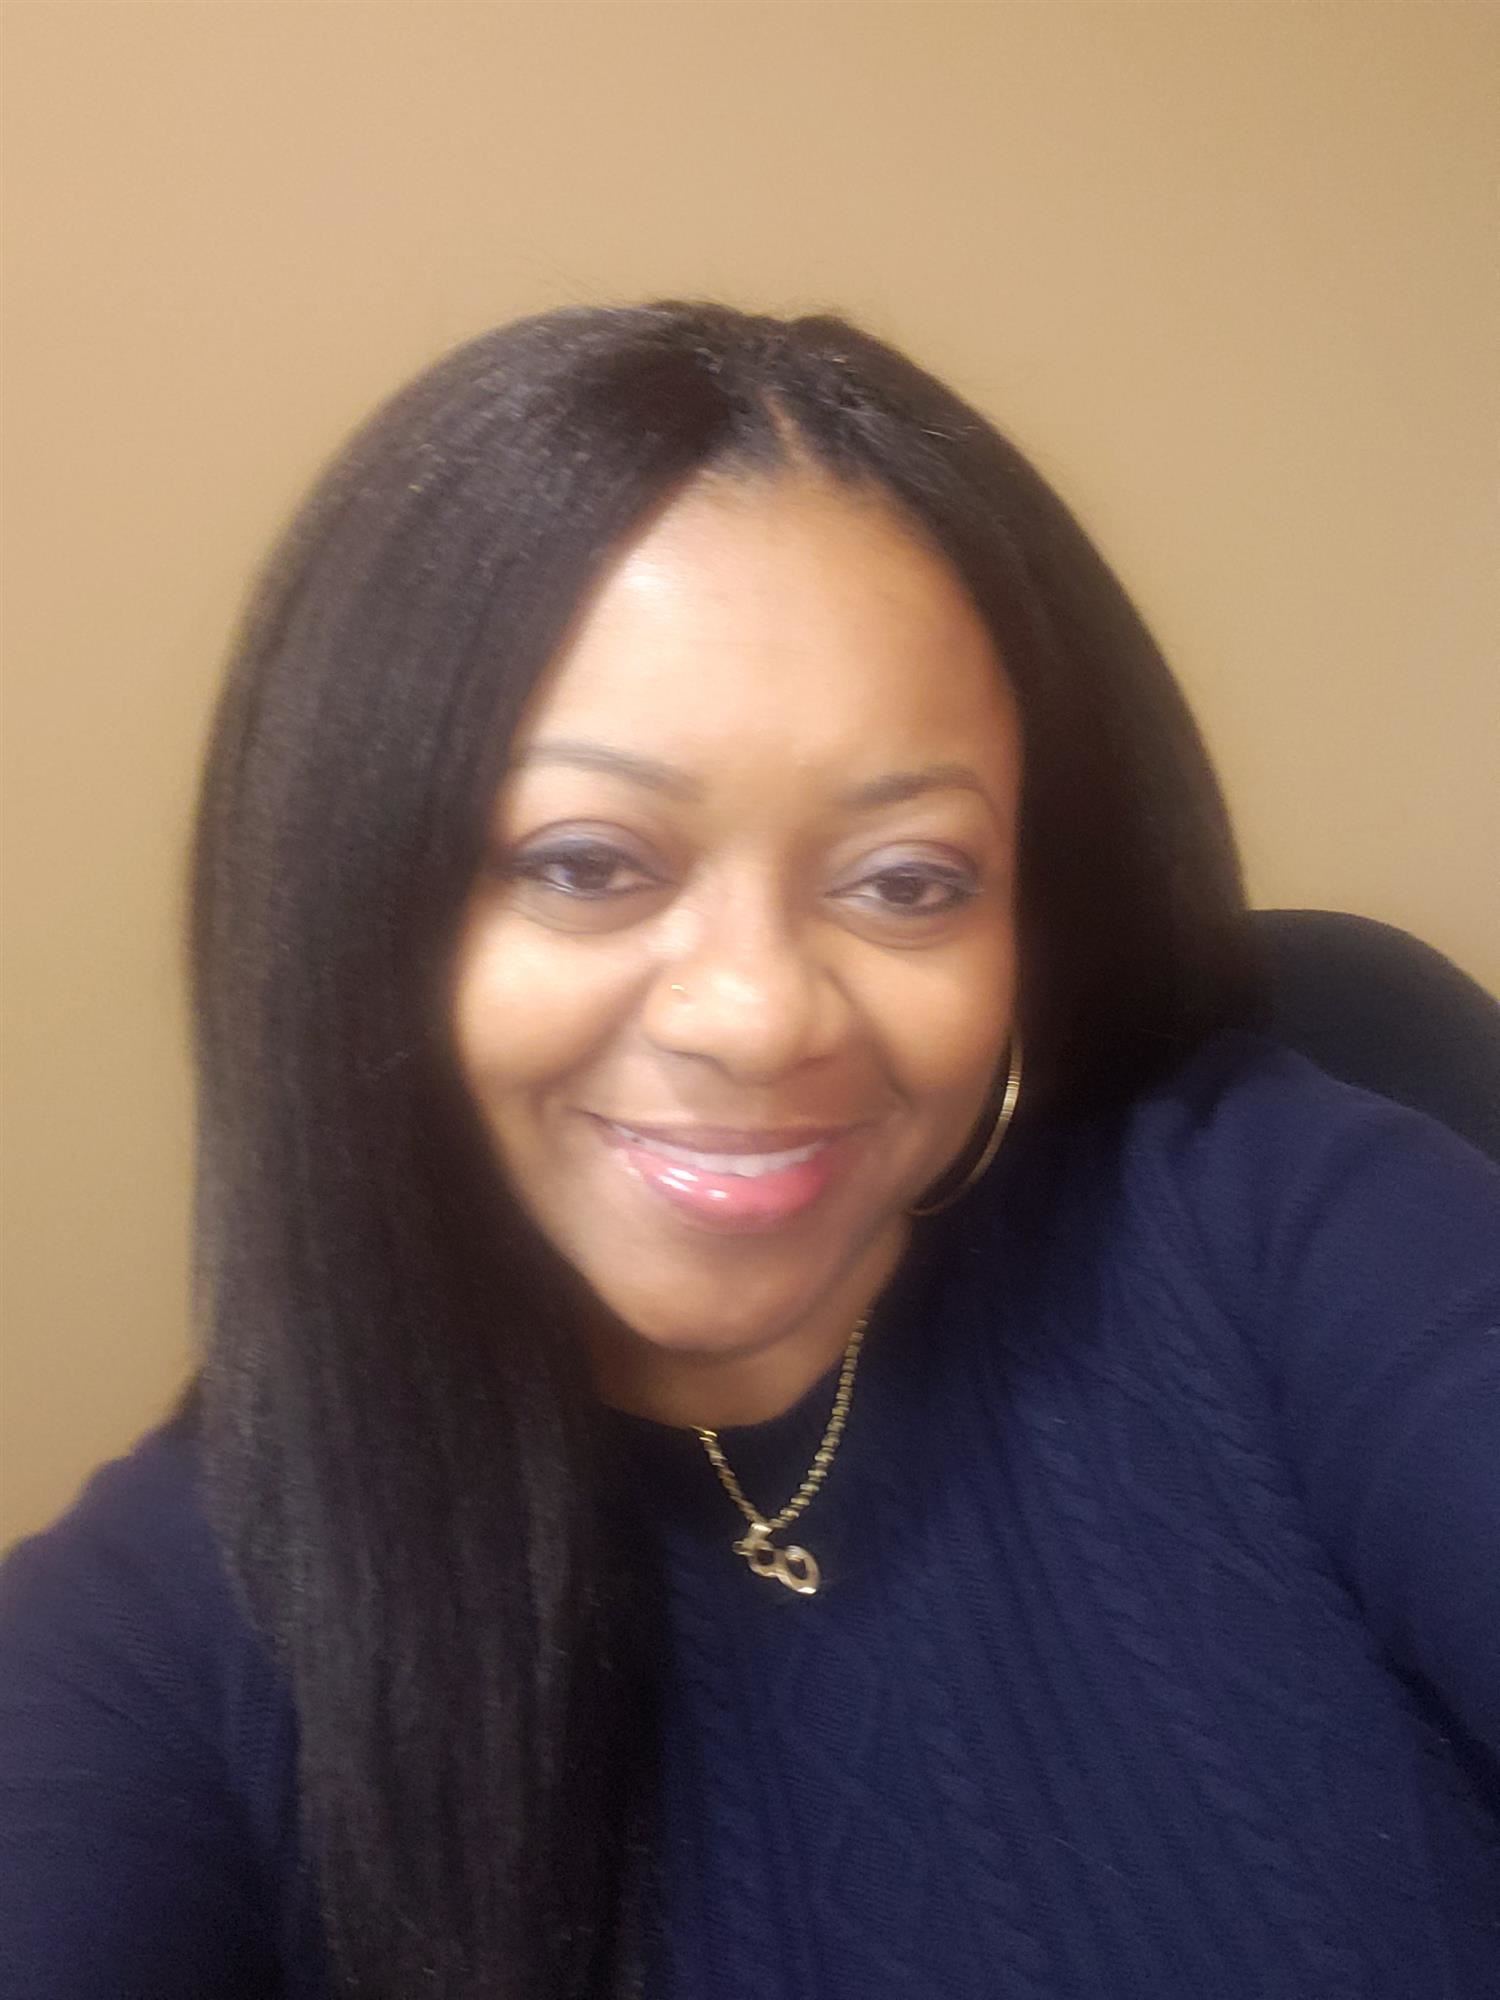 Ms. Michelle Edwards